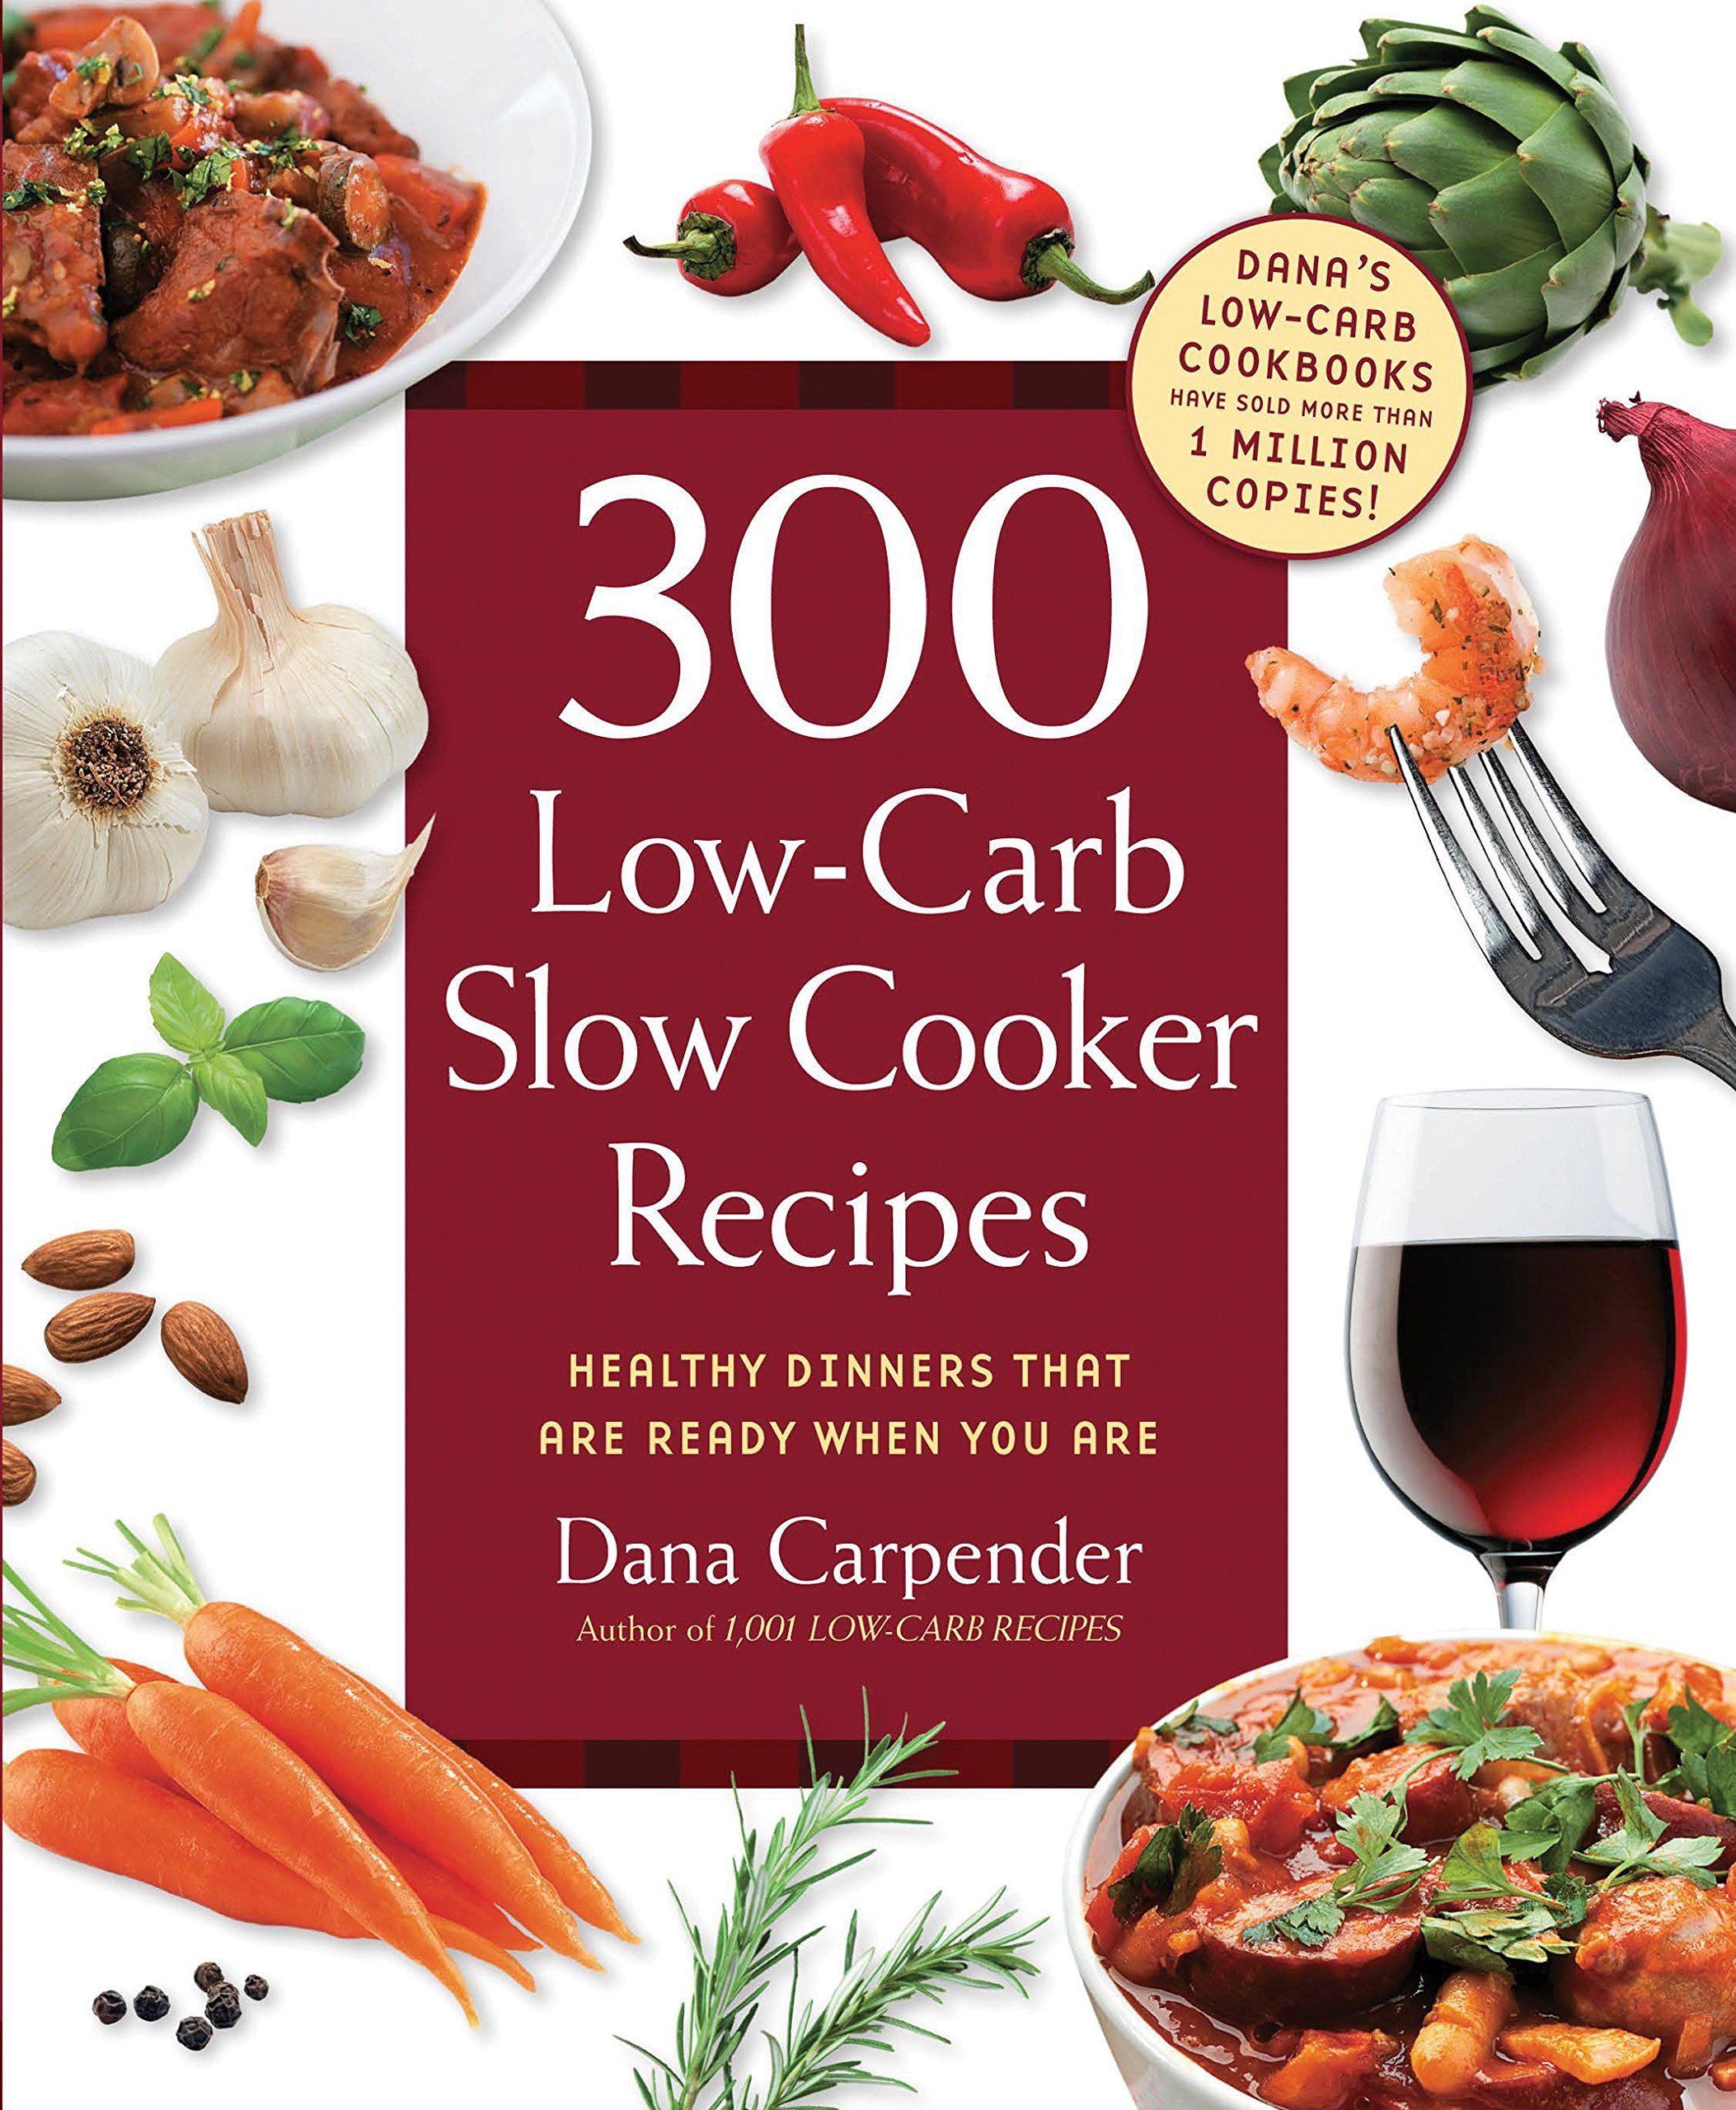 300 Low Carb Slow Cooker Recipes product image